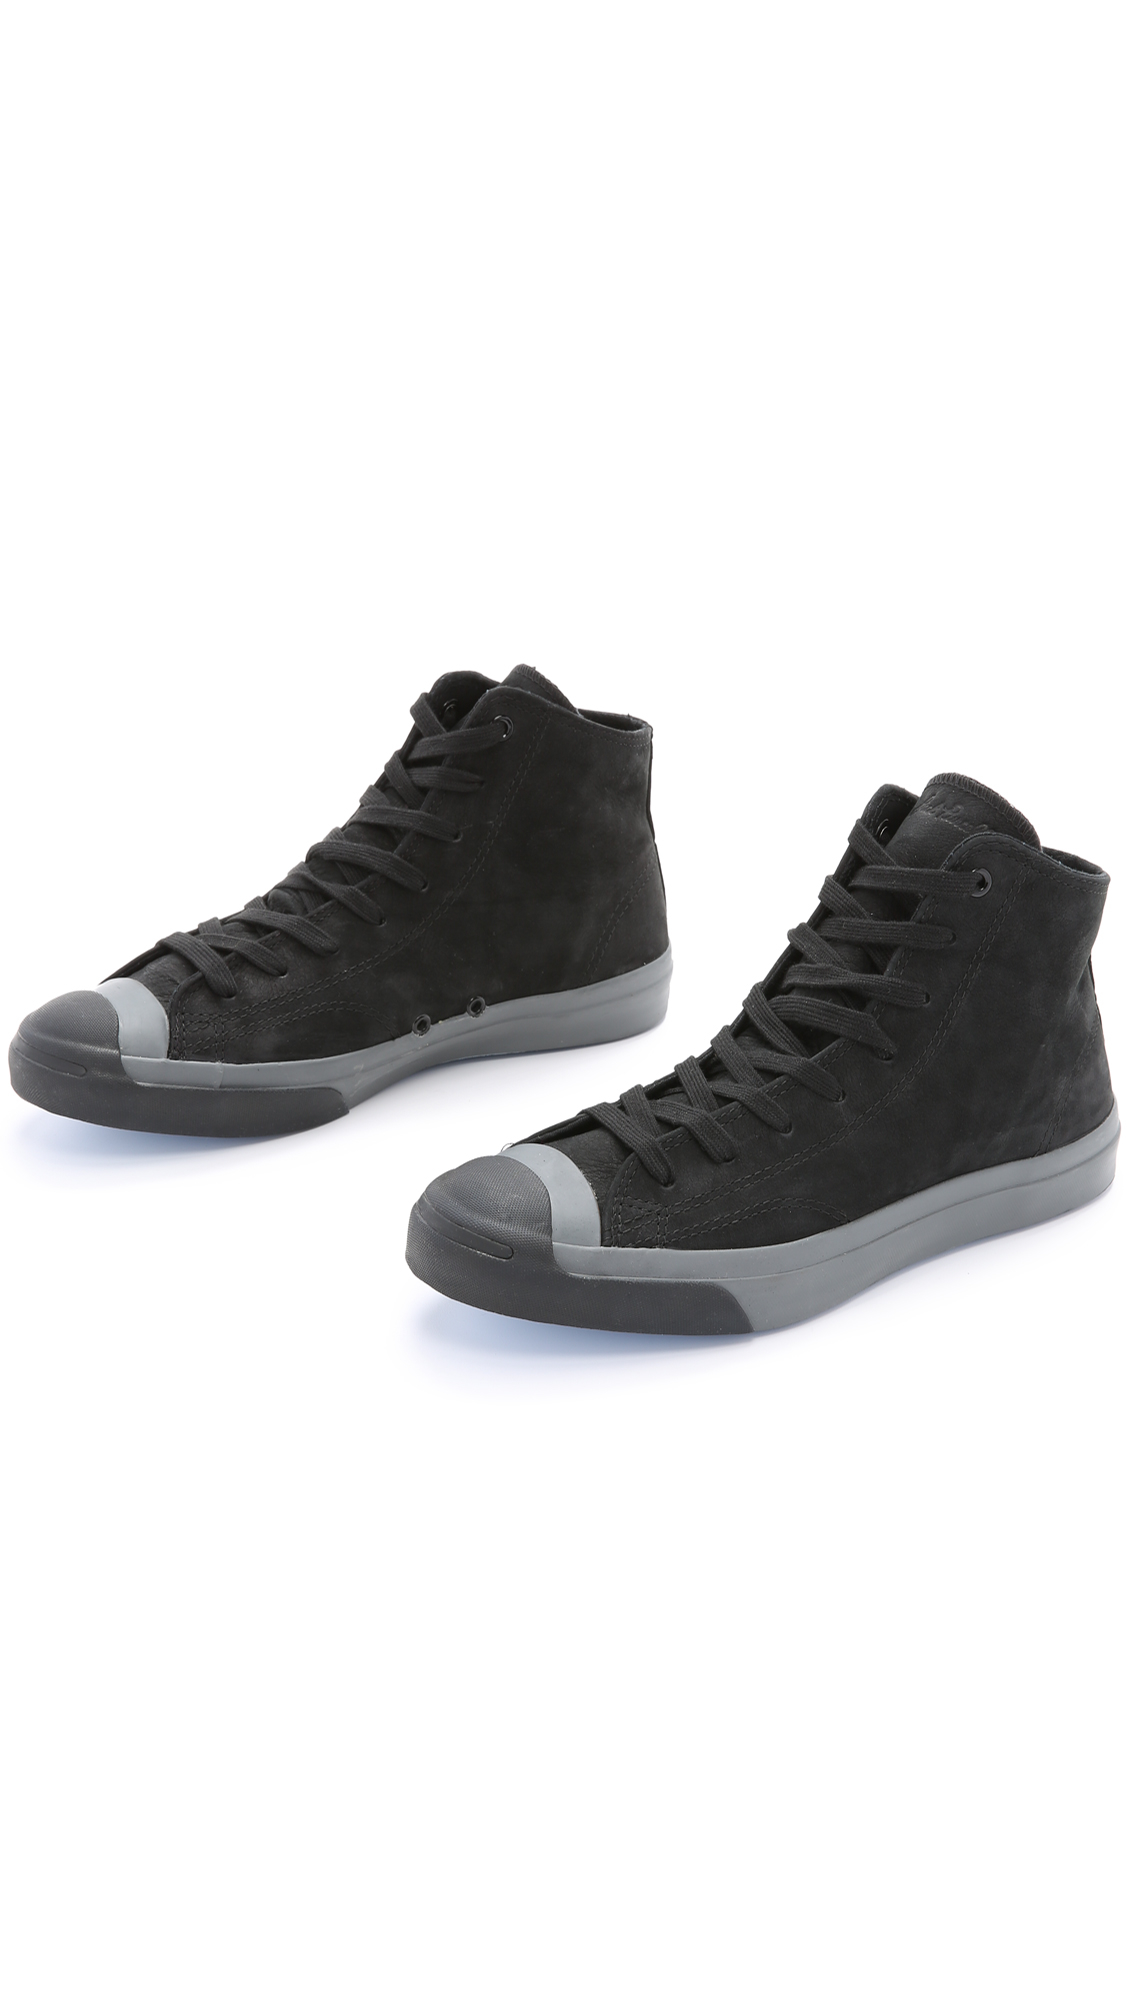 a75092591c51 Converse.com  Lyst - Converse Jack Purcell Nubuck Mid Top Sneakers in Black  for Men . ...